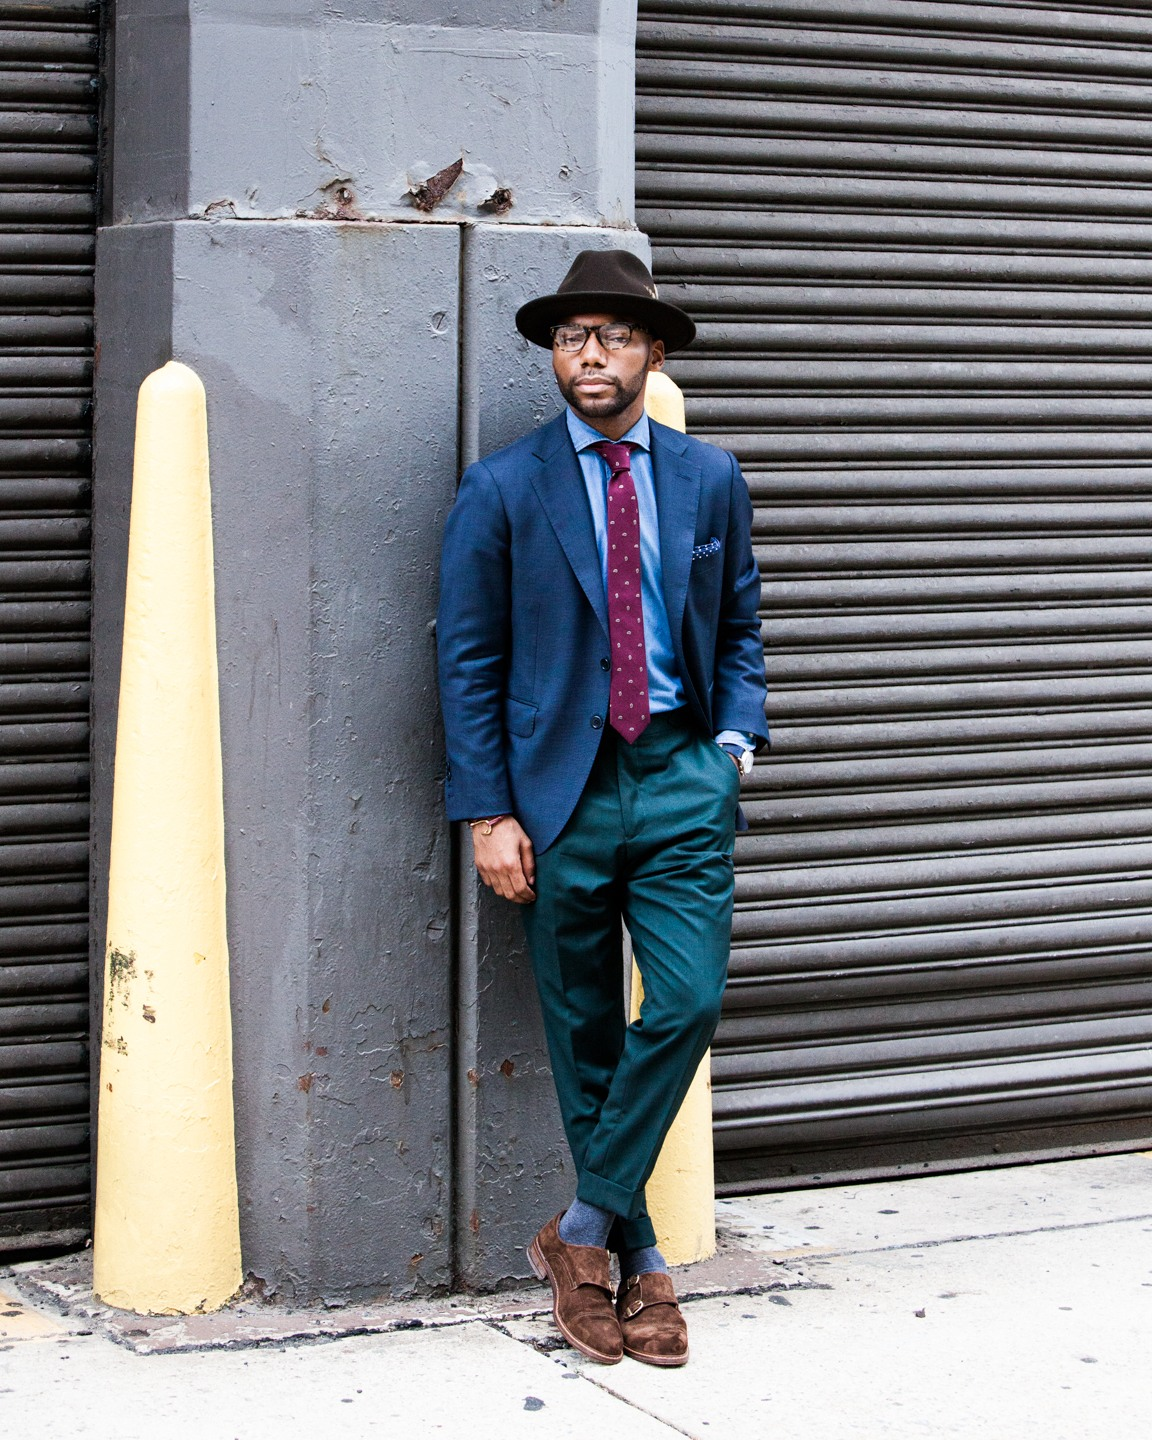 The 27 Strongest Street Style Looks From Men's Fashion Week